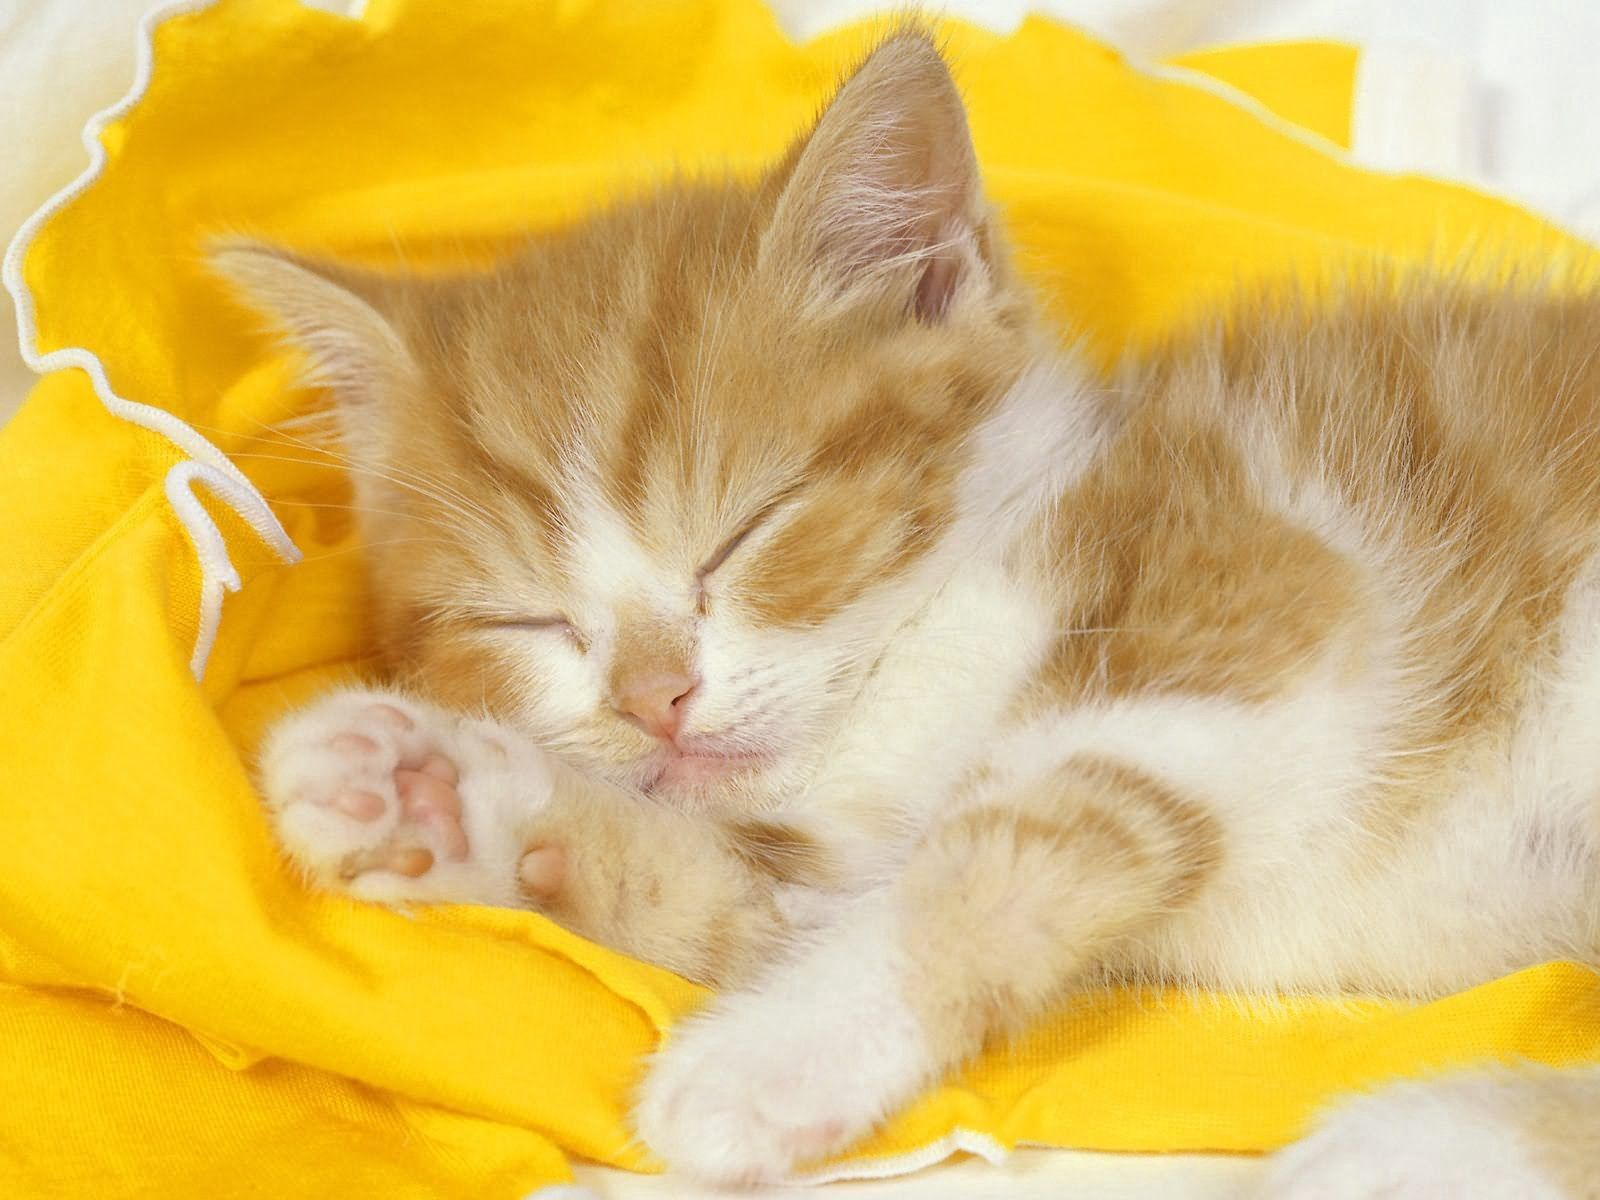 85090 Screensavers and Wallpapers Kitten for phone. Download Animals, Kitty, Kitten, Cloth, Kid, Tot, Sleep, Dream pictures for free